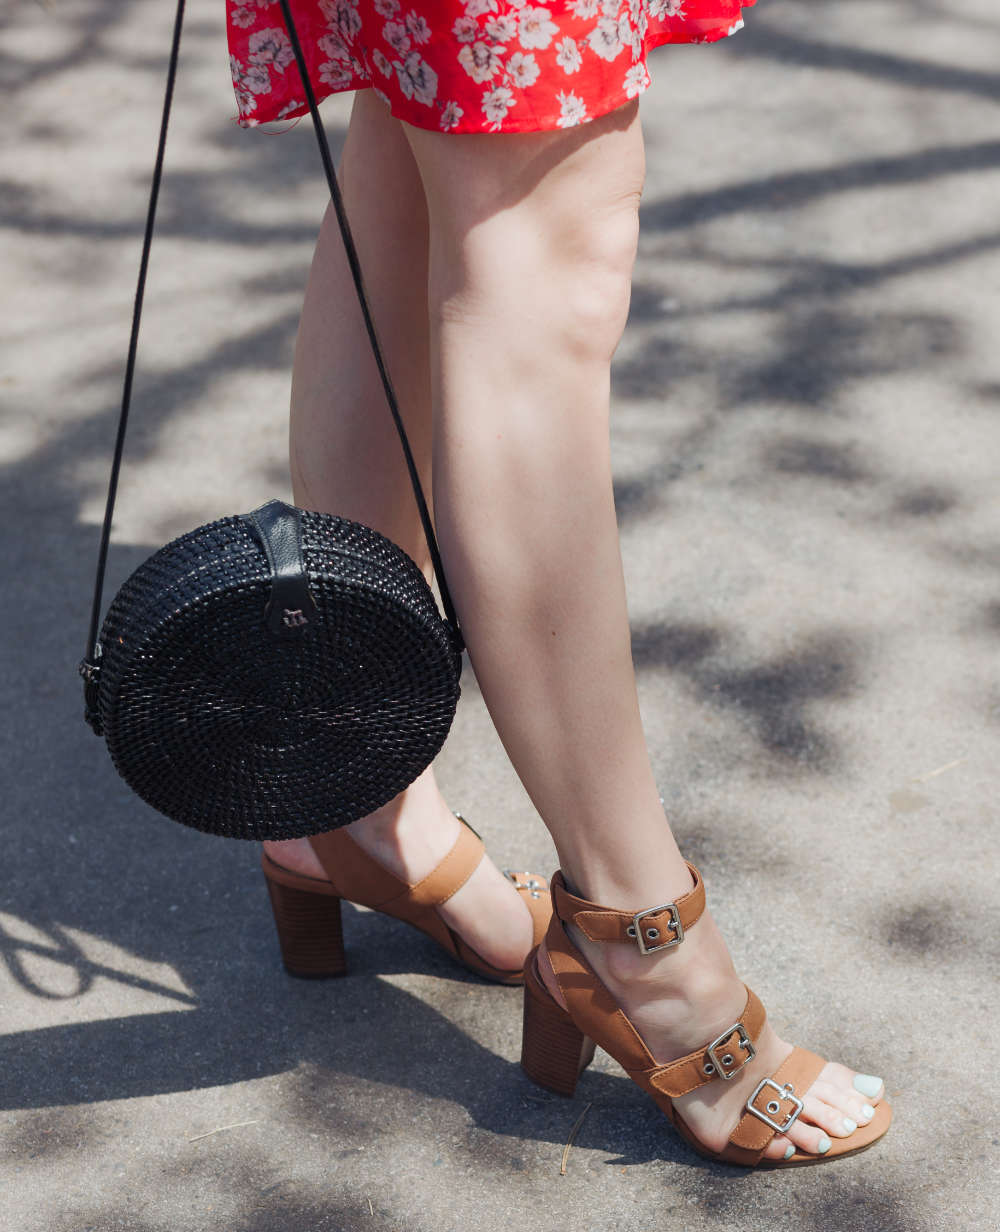 Lady wearing Brown sandals holding round purse with red summer dress.